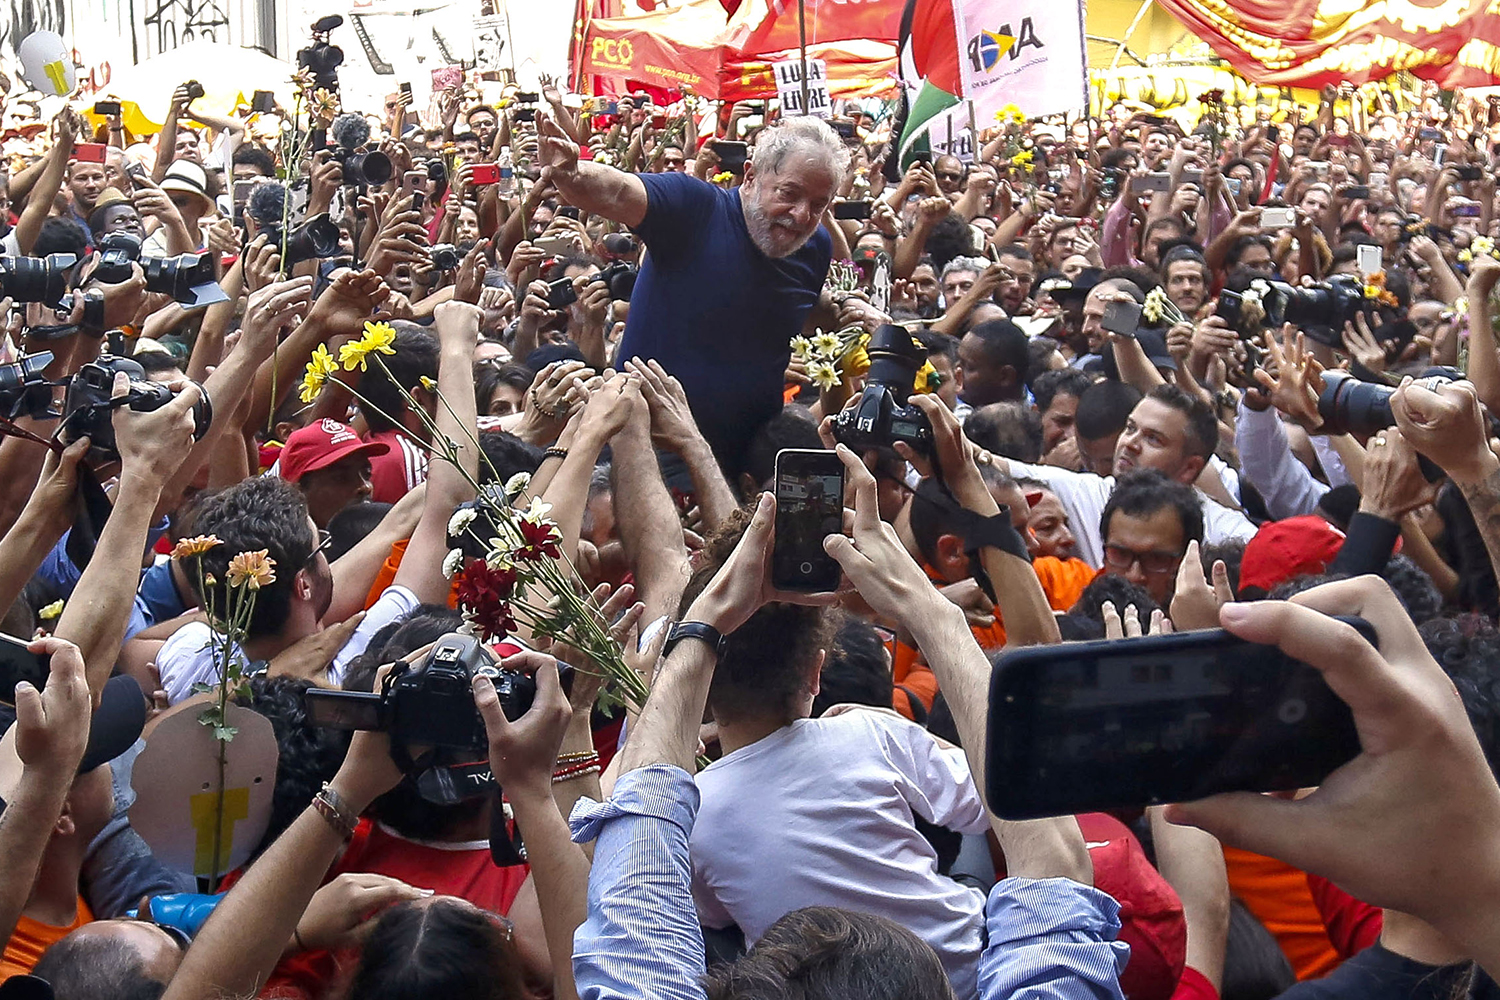 Brazilian ex-president (2003-2011) Luiz Inacio Lula da Silva is carried by supporters after attending a Catholic Mass in memory of his late wife Marisa Leticia, at the metalworkers' union building in Sao Bernardo do Campo, in metropolitan Sao Paulo, Brazil, on April 7, 2018. Brazil's election frontrunner and controversial leftist icon said Saturday that he will comply with an arrest warrant to start a 12-year sentence for corruption.